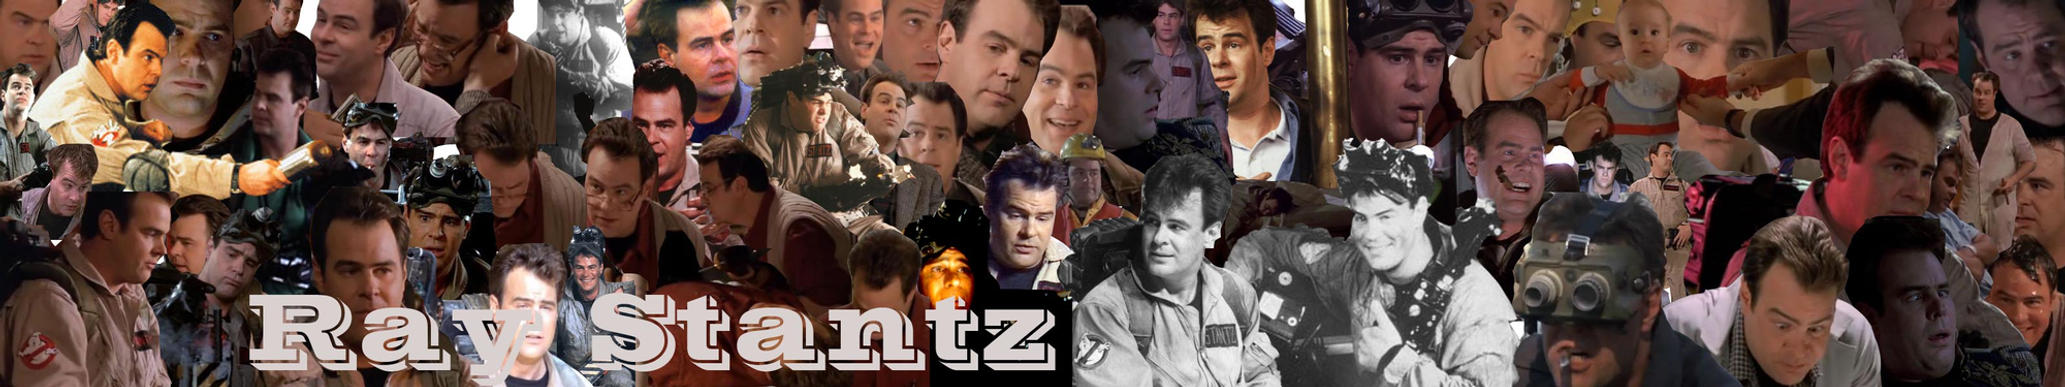 Dan Aykroyd as Ray Stantz by Applescruffgirl